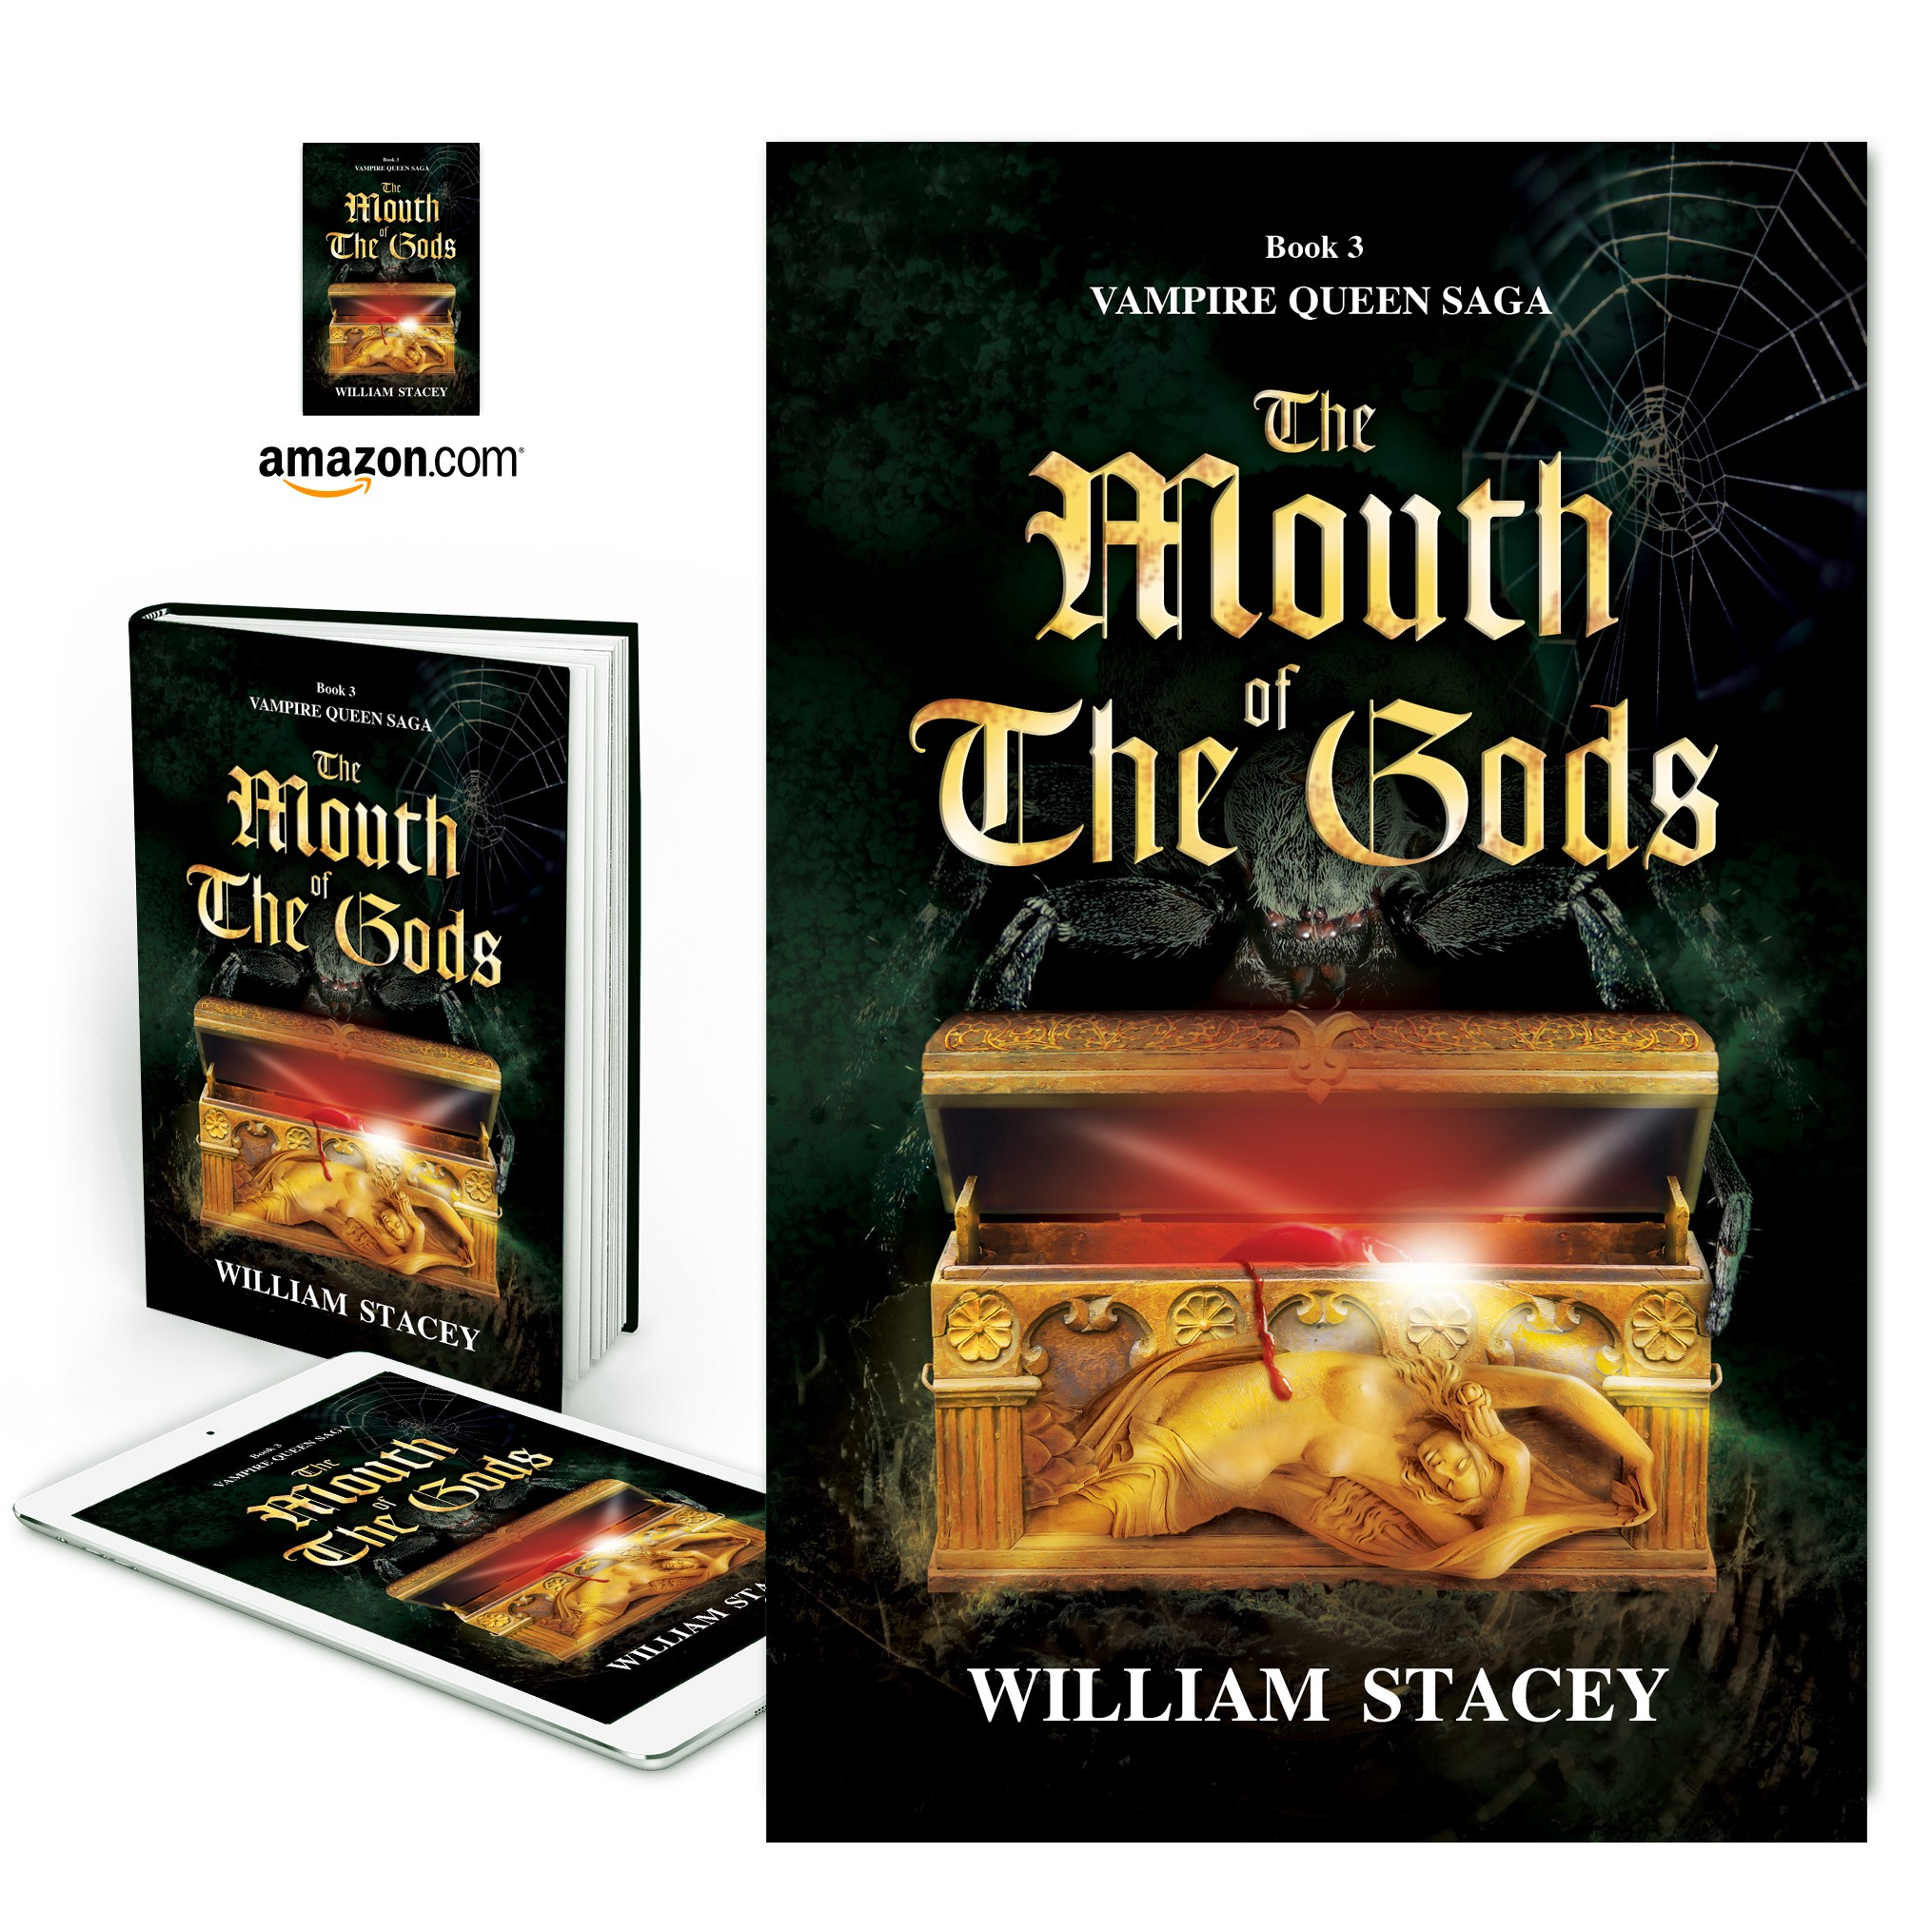 The Mouth of the Gods: Book 3 of the Vampire Queen Saga